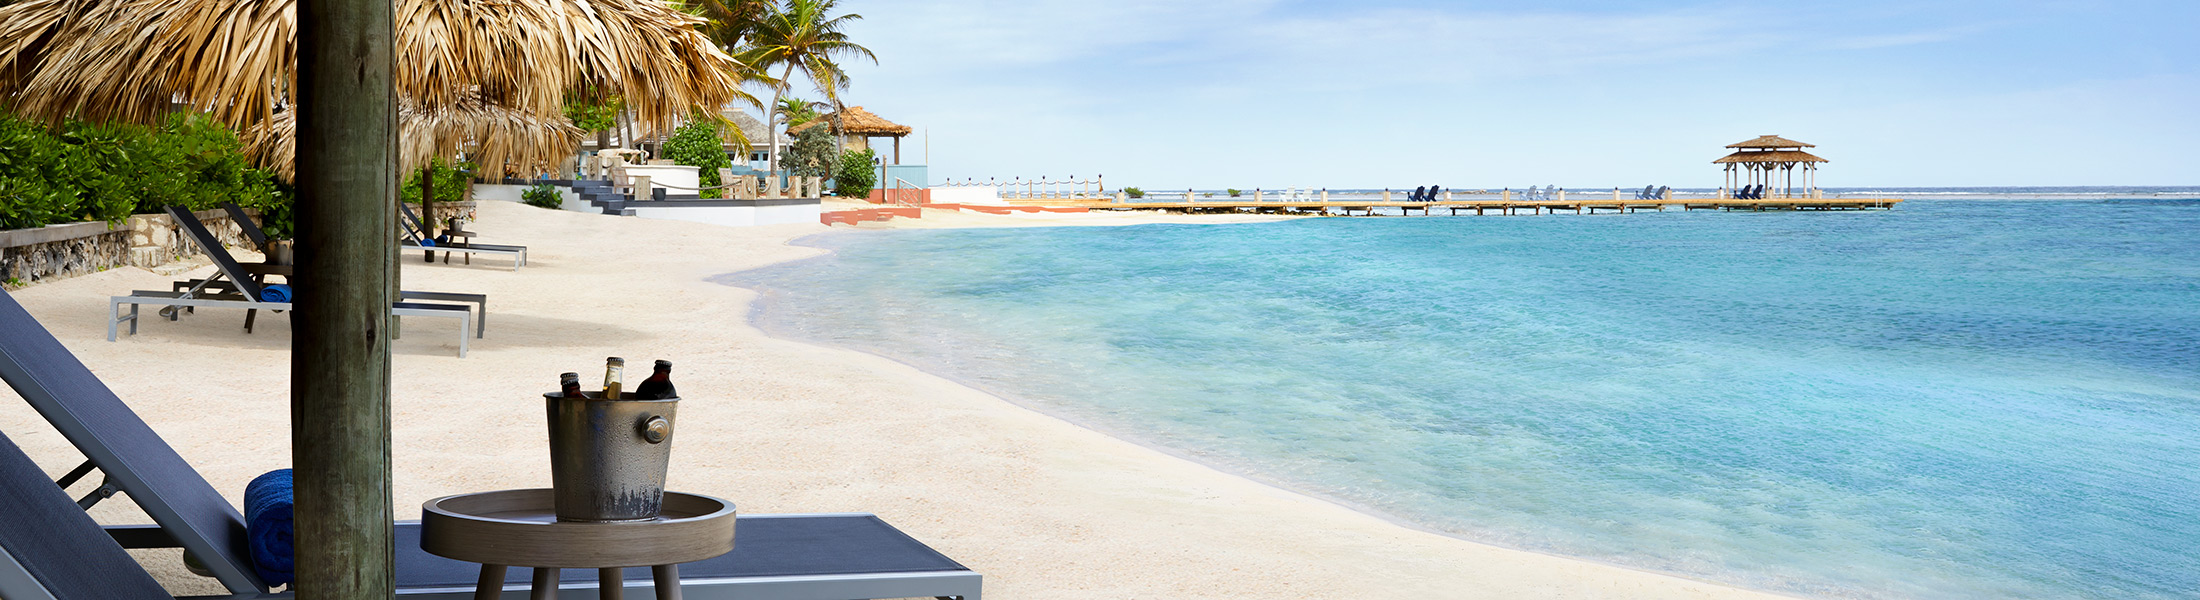 Sun loungers on the beach at Zoetry Montego Bay